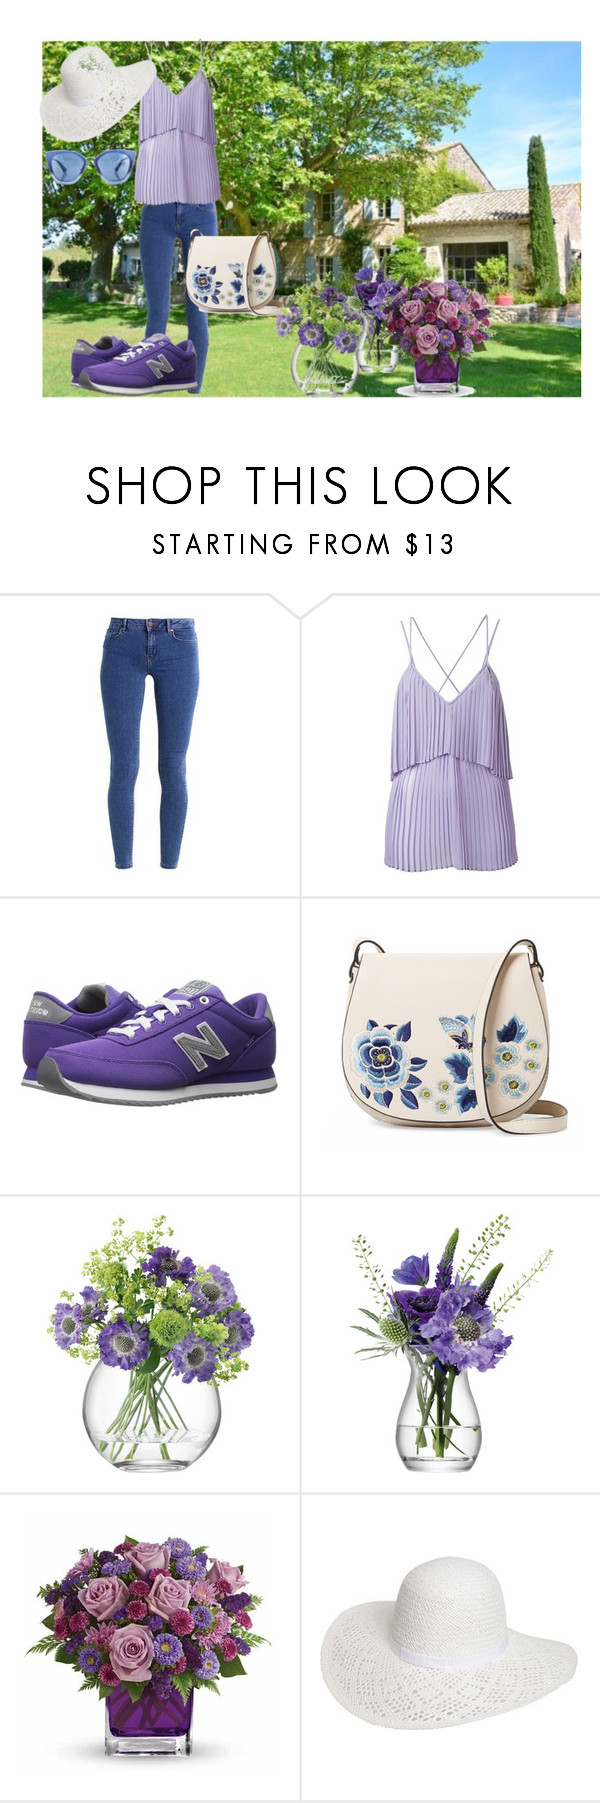 """""""One day in the country"""" by ciukinaa ❤ liked on Polyvore featuring even&odd, Elie Saab, New Balance Classics, French Connection, LSA International, Dorothy Perkins, Prada and country"""